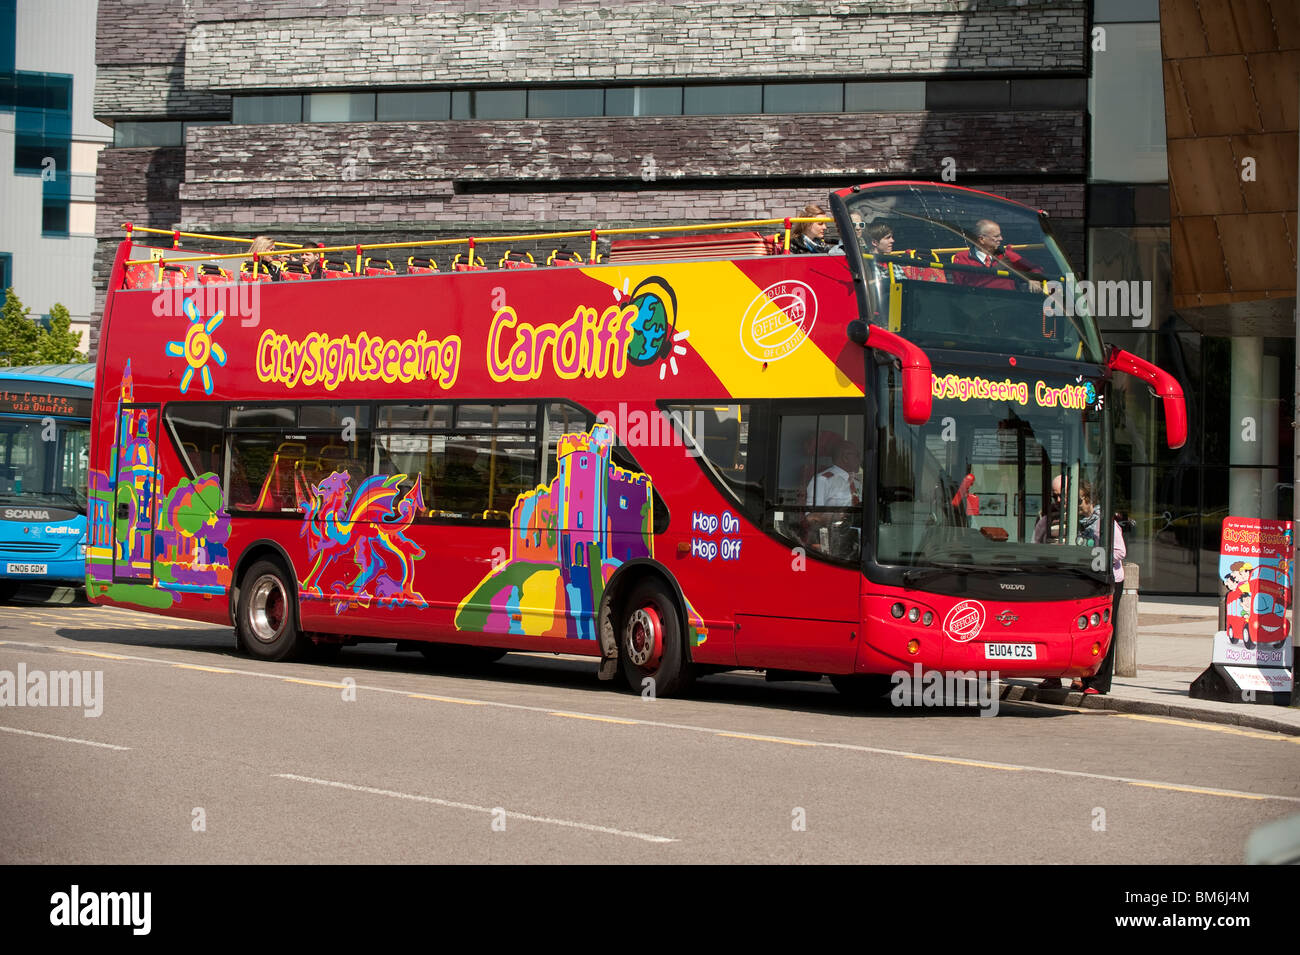 An open topped double decker sightseeing tour bus, Cardiff city, Wales UK - Stock Image